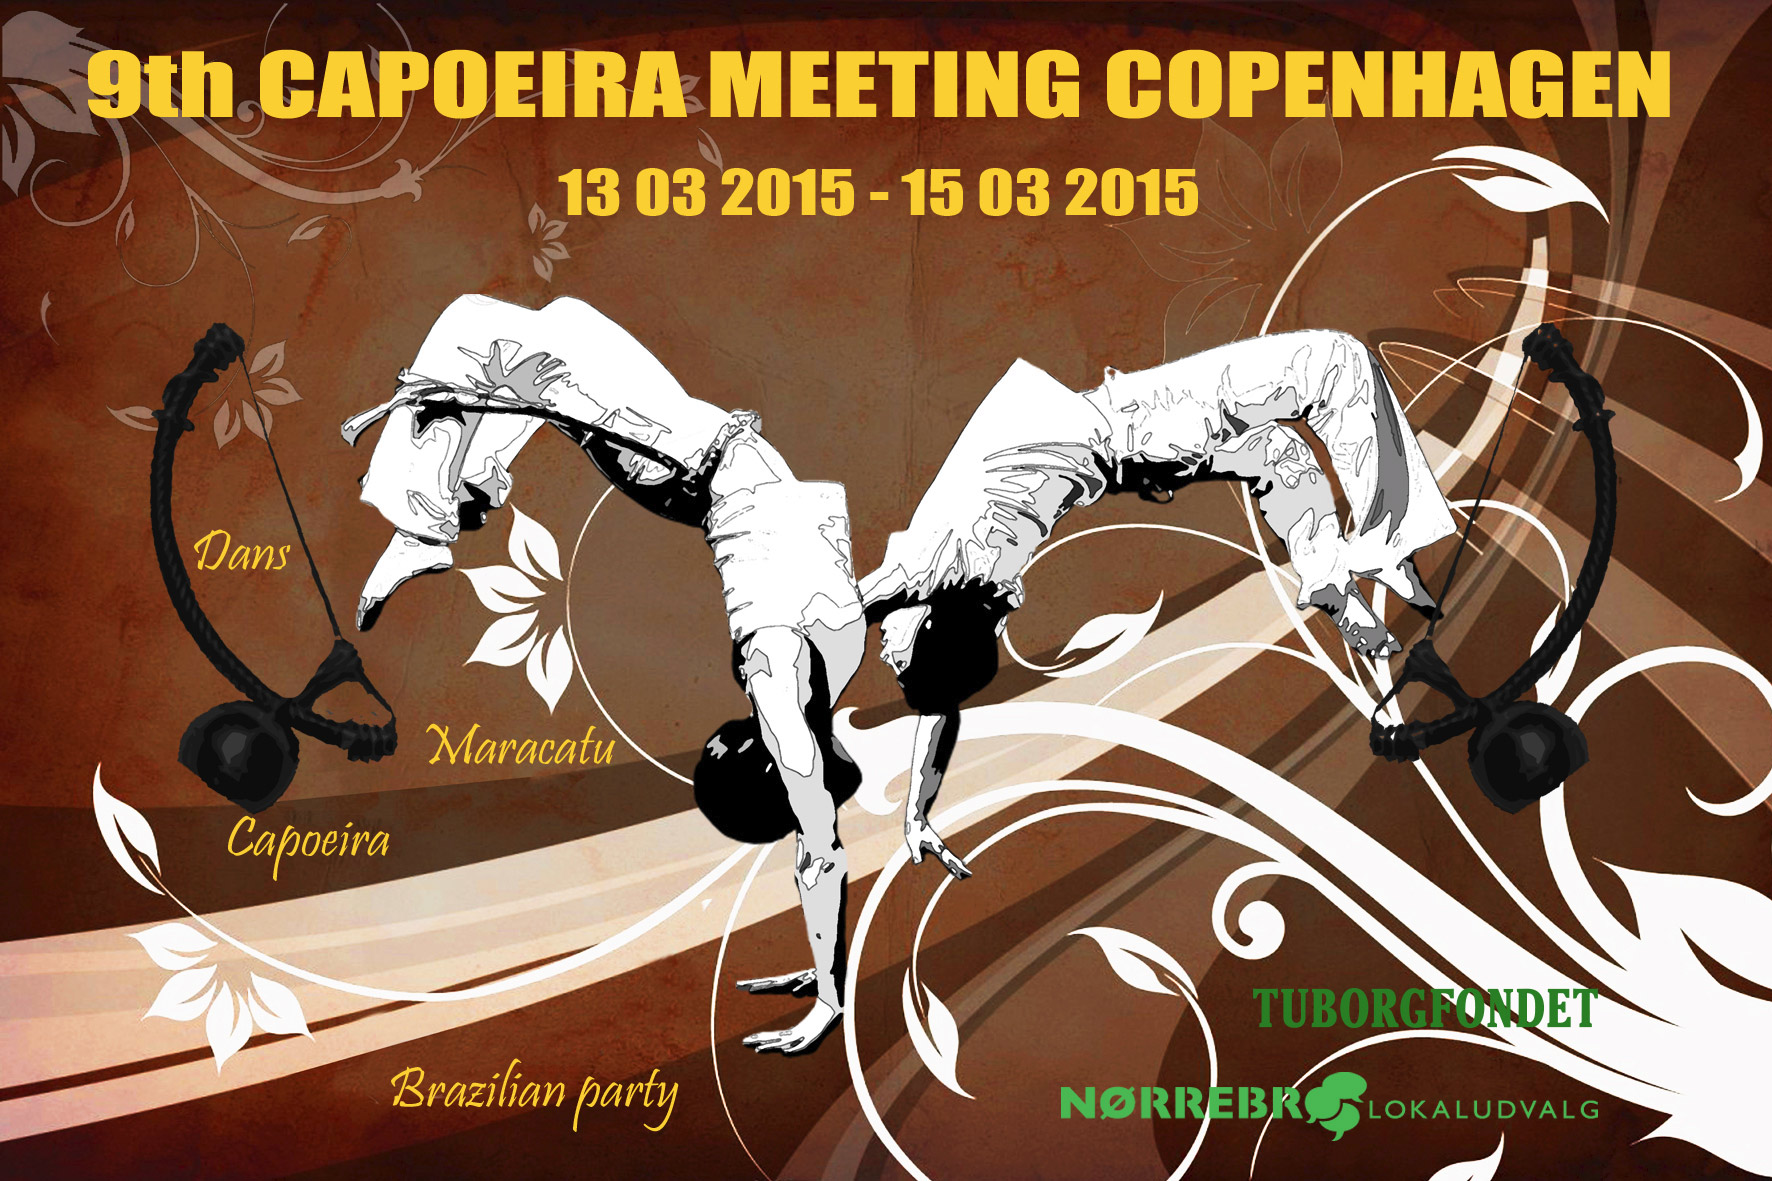 9th Capoeira Meeting Copenhagen